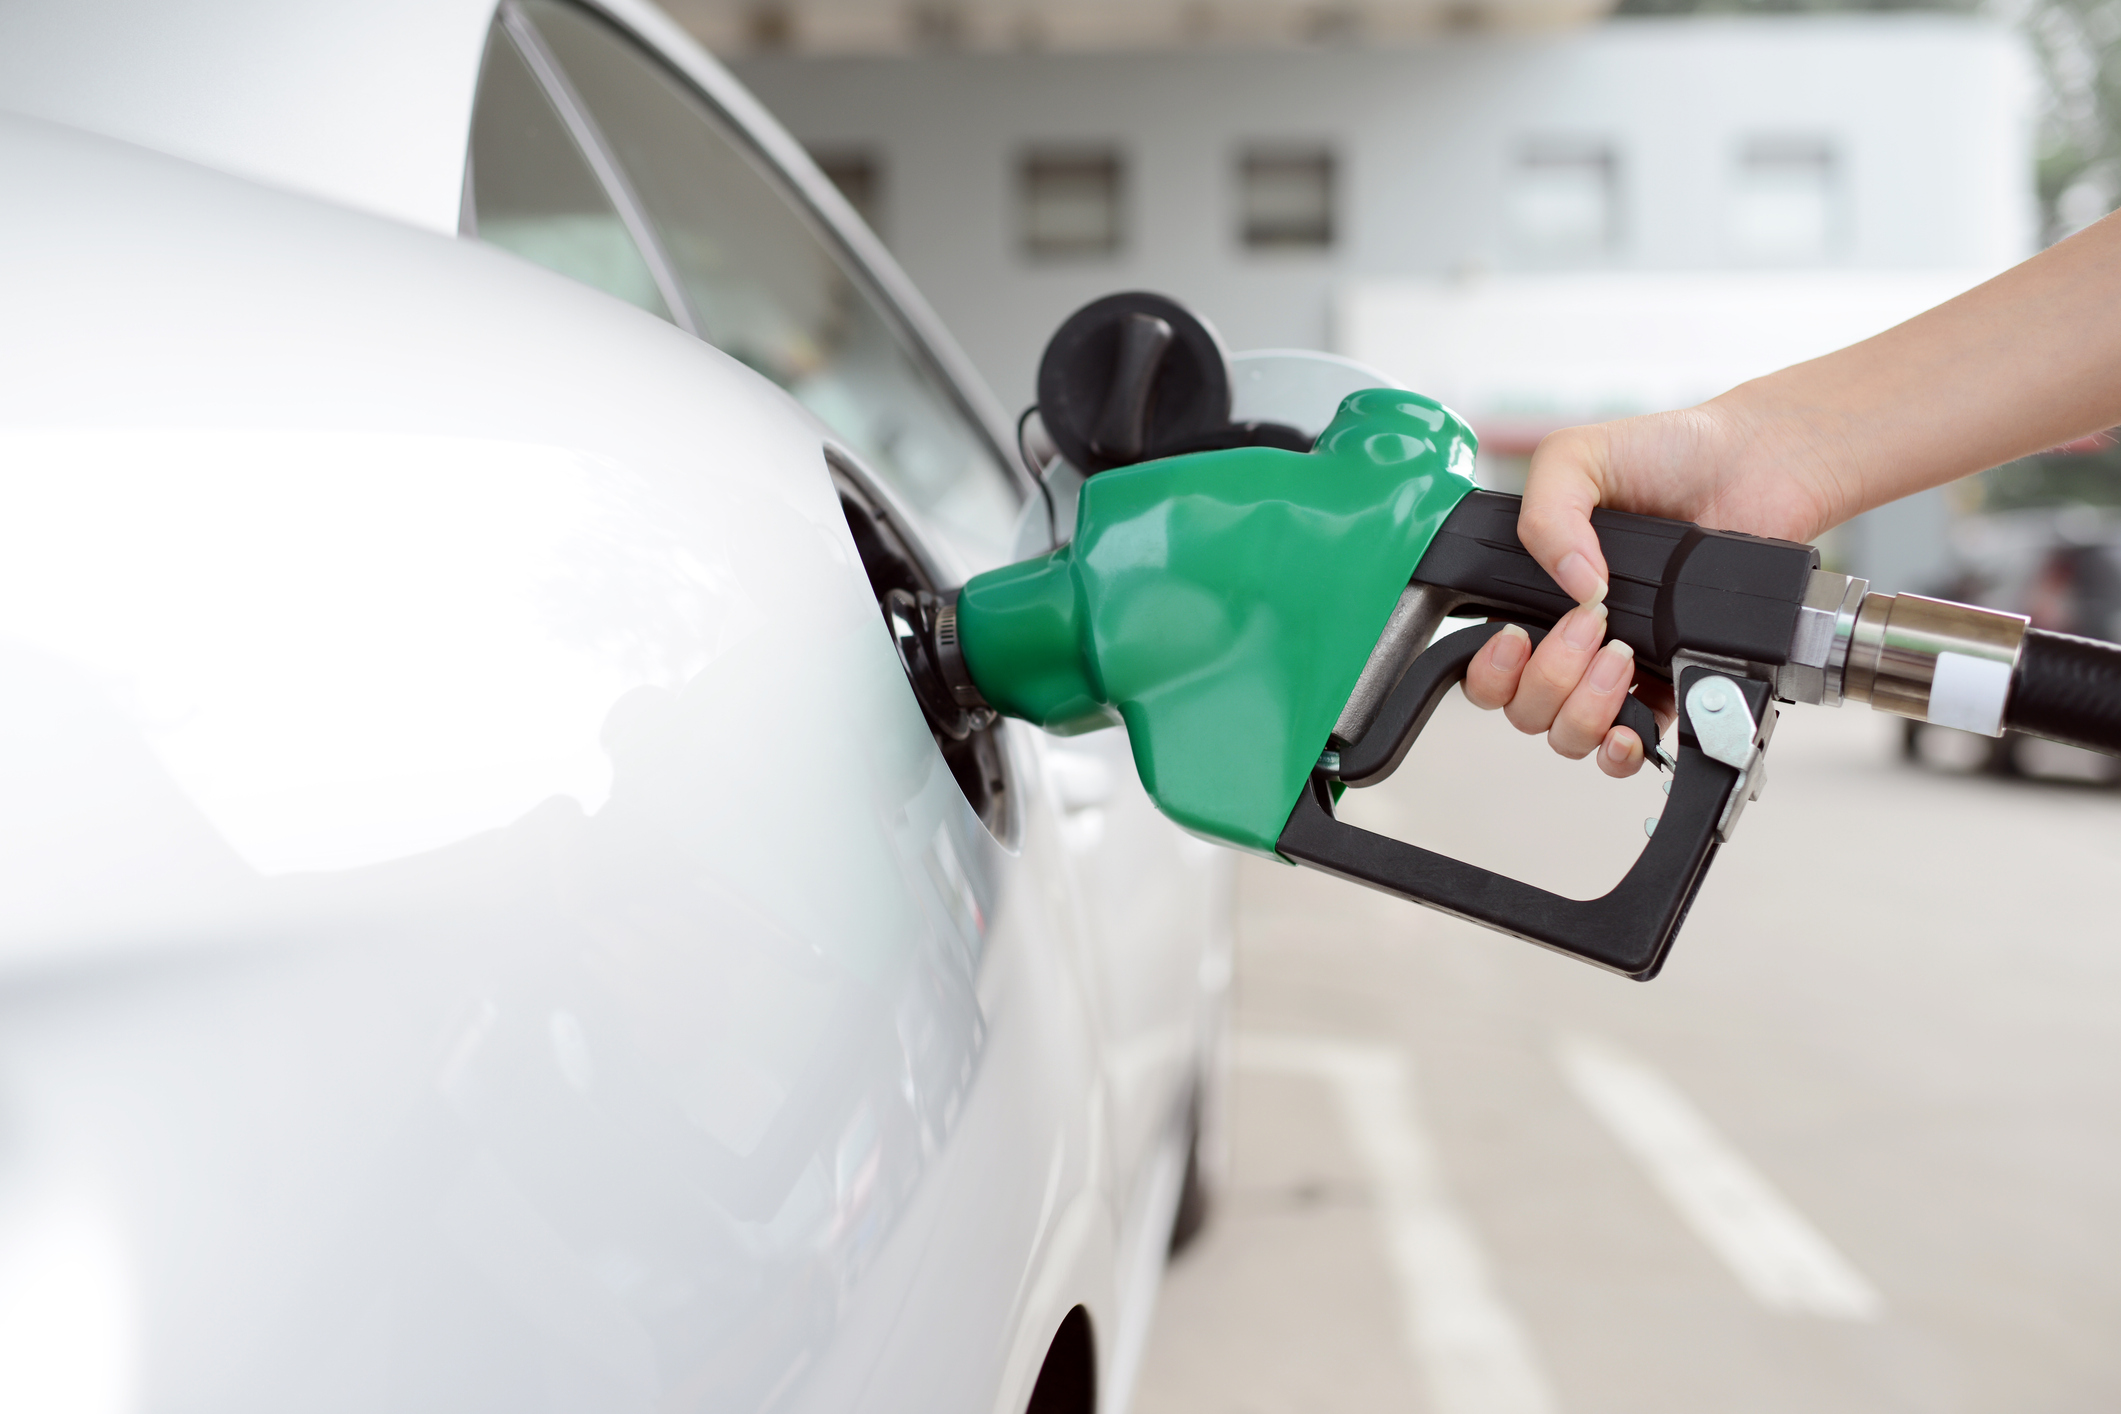 Eco-driving benefits the environment and your budget